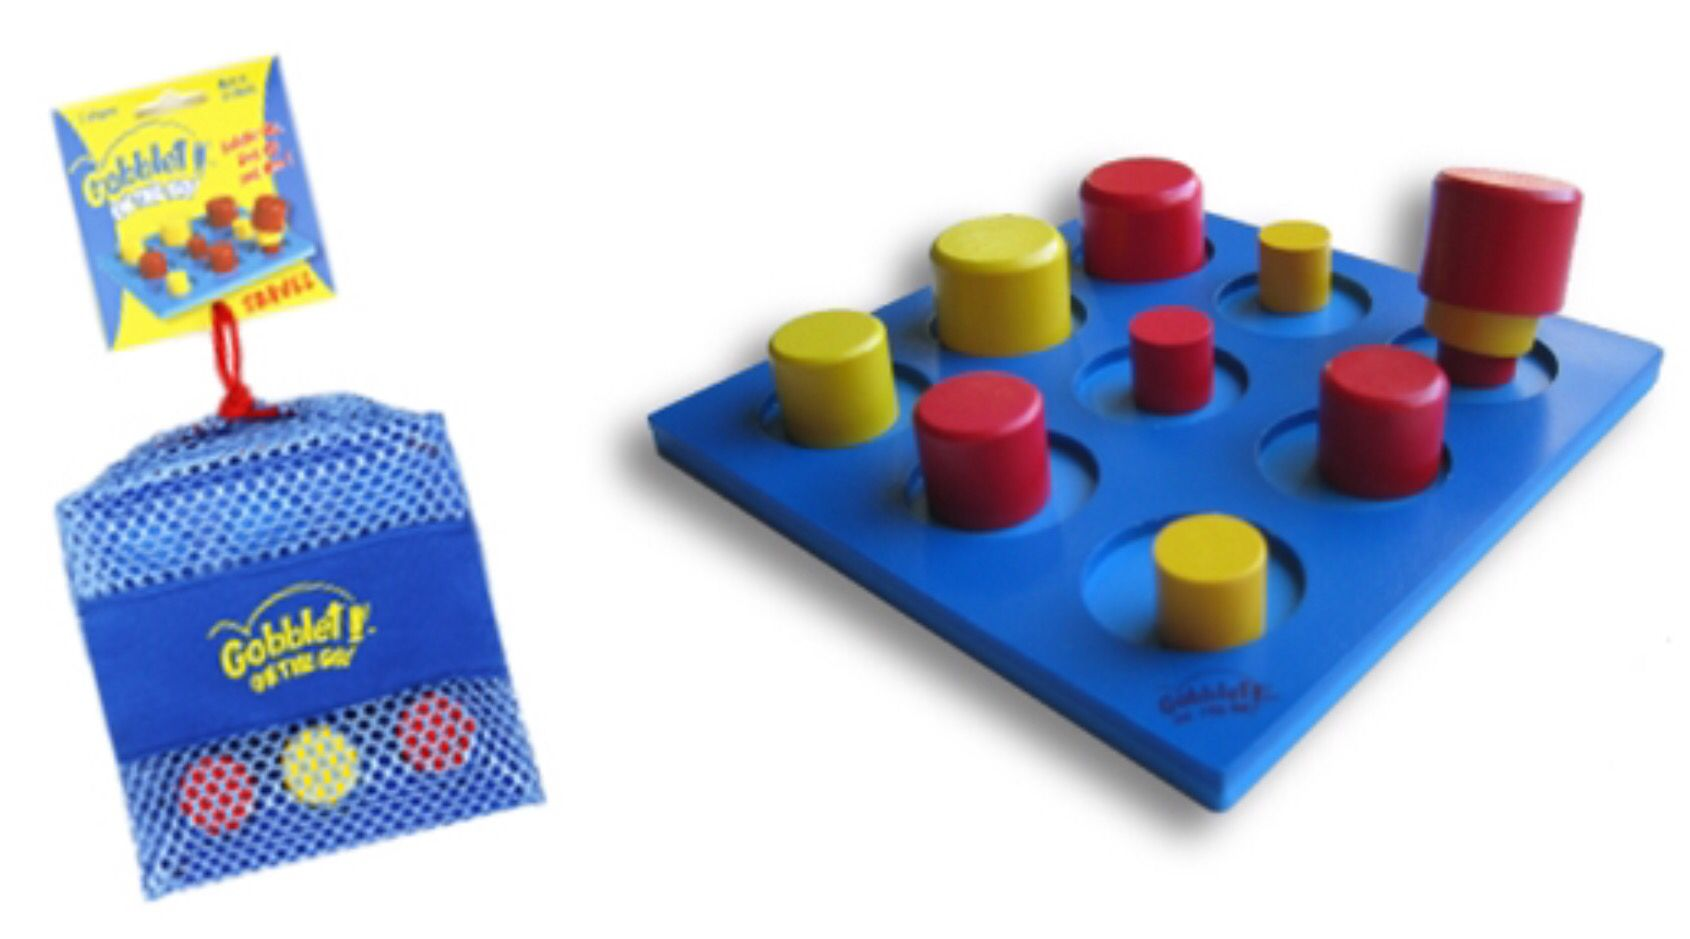 Great for teaching Cardinal Directions for Orientation and Mobility. A game designed by Merry-Noel Chamberlain, NOMC. Play like Tic-Tac-Toe. For the top row, players state North West, North or North East when placing their piece. Center is W, equator, E and bottom is SW, S, SE. This game offers challenges. Add Velcro dots to one color to make the game tactile.